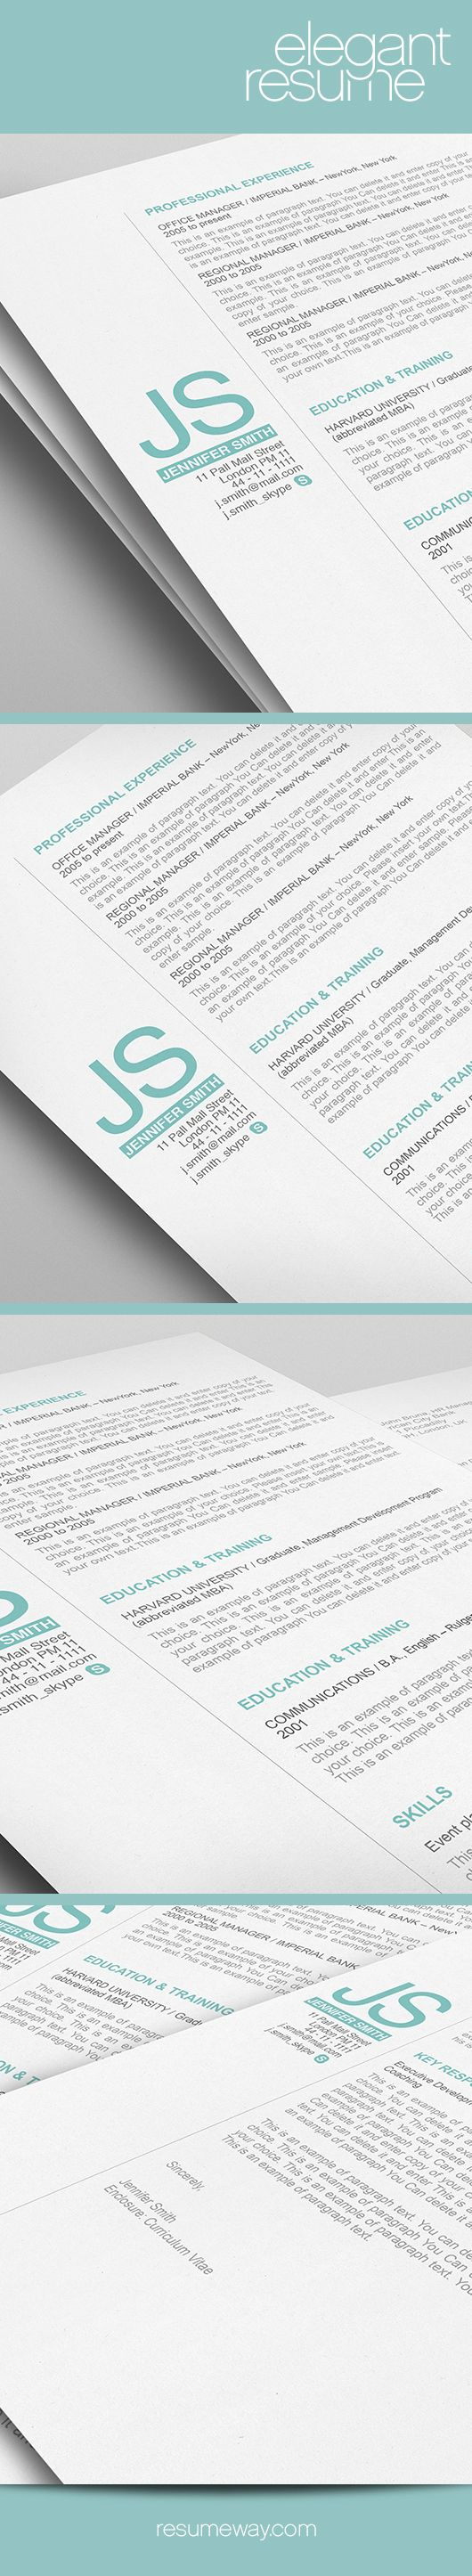 17 best images about elegant resume templates on pinterest